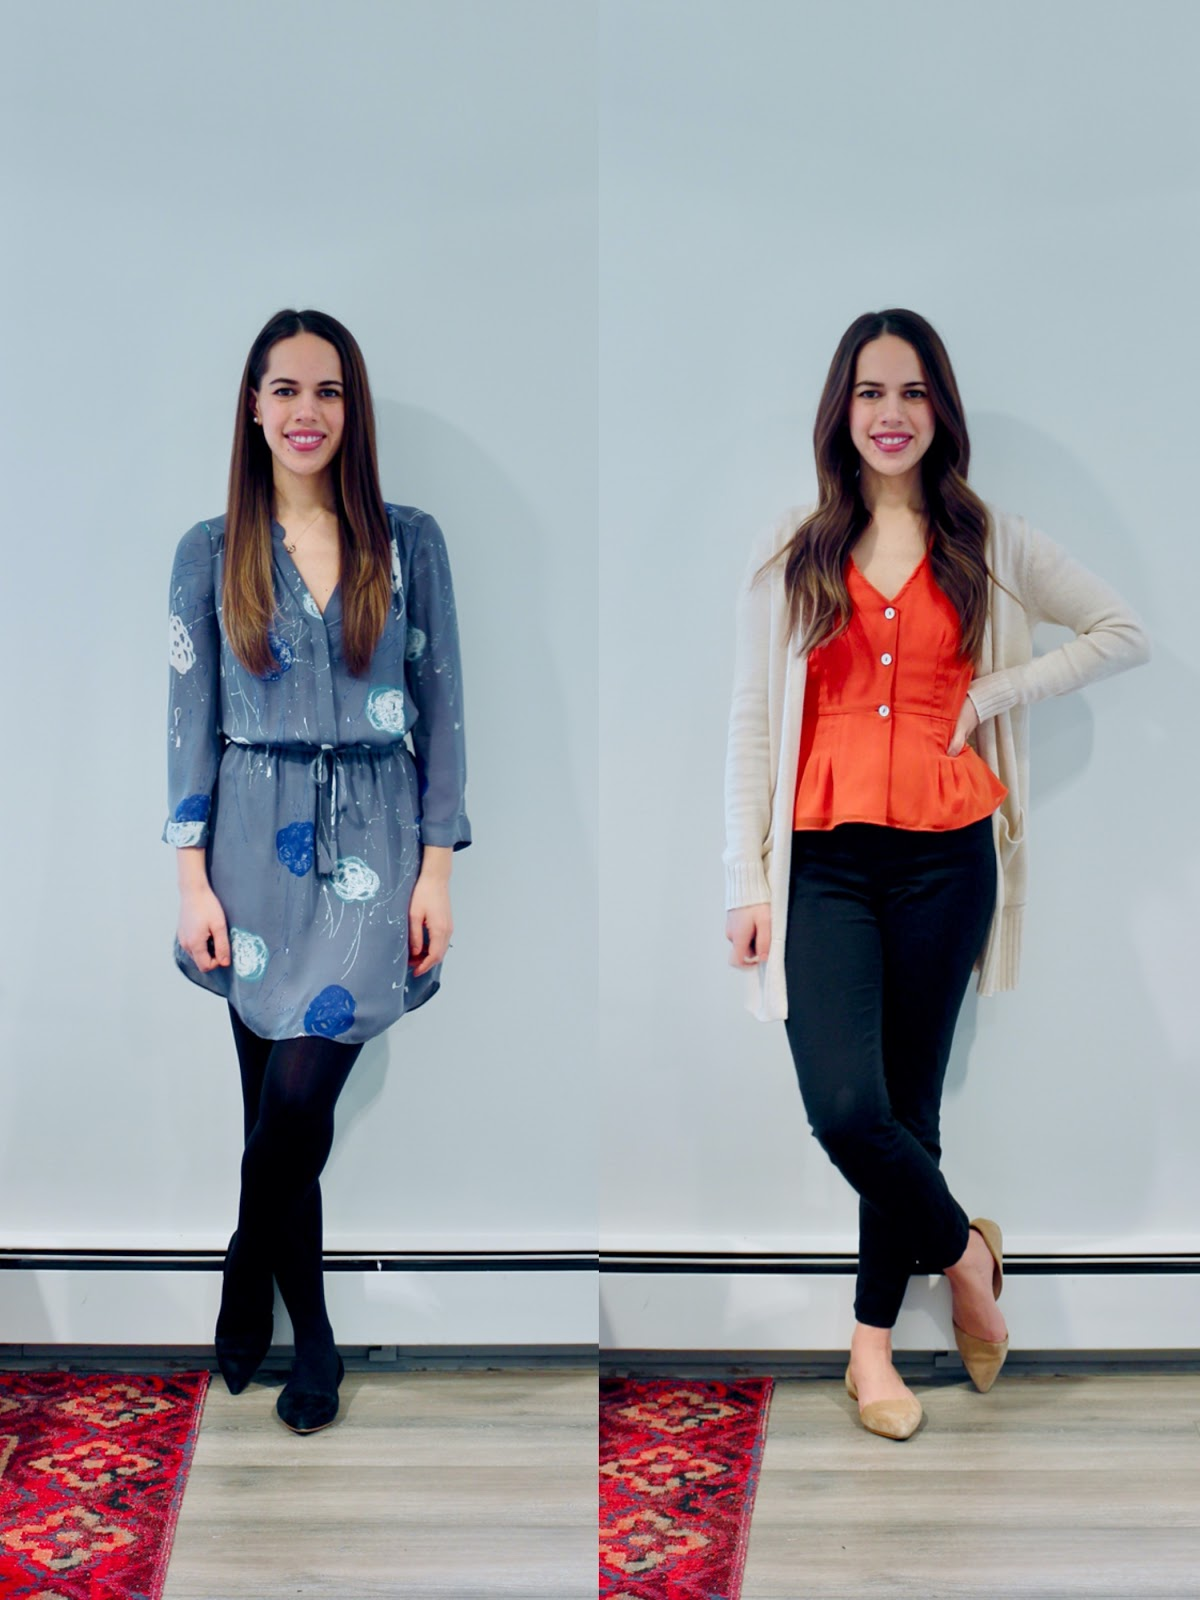 Jules in Flats - February Outfits Week 3 (Business Casual Winter Workwear on a Budget)